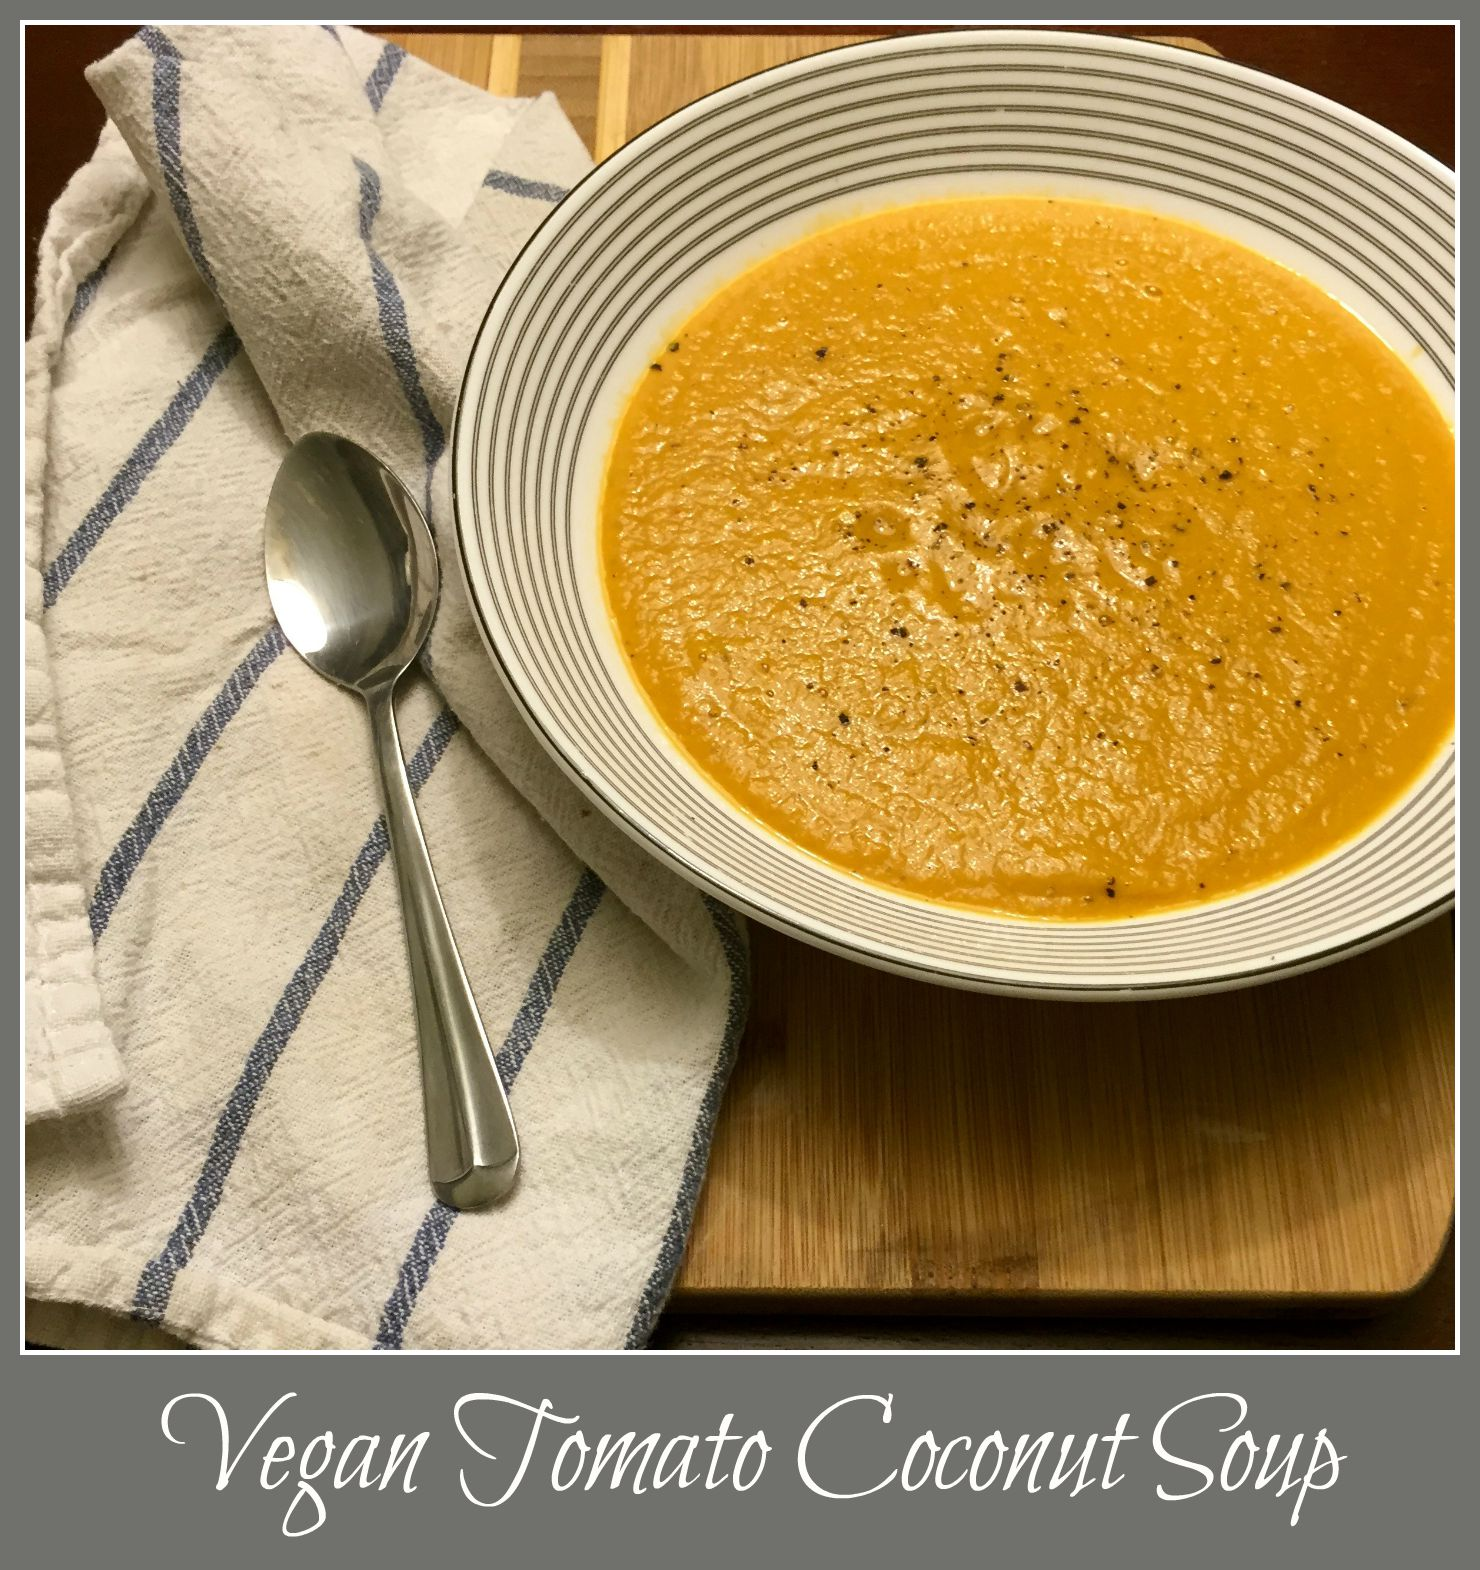 Vegan Tomato Coconut Soup